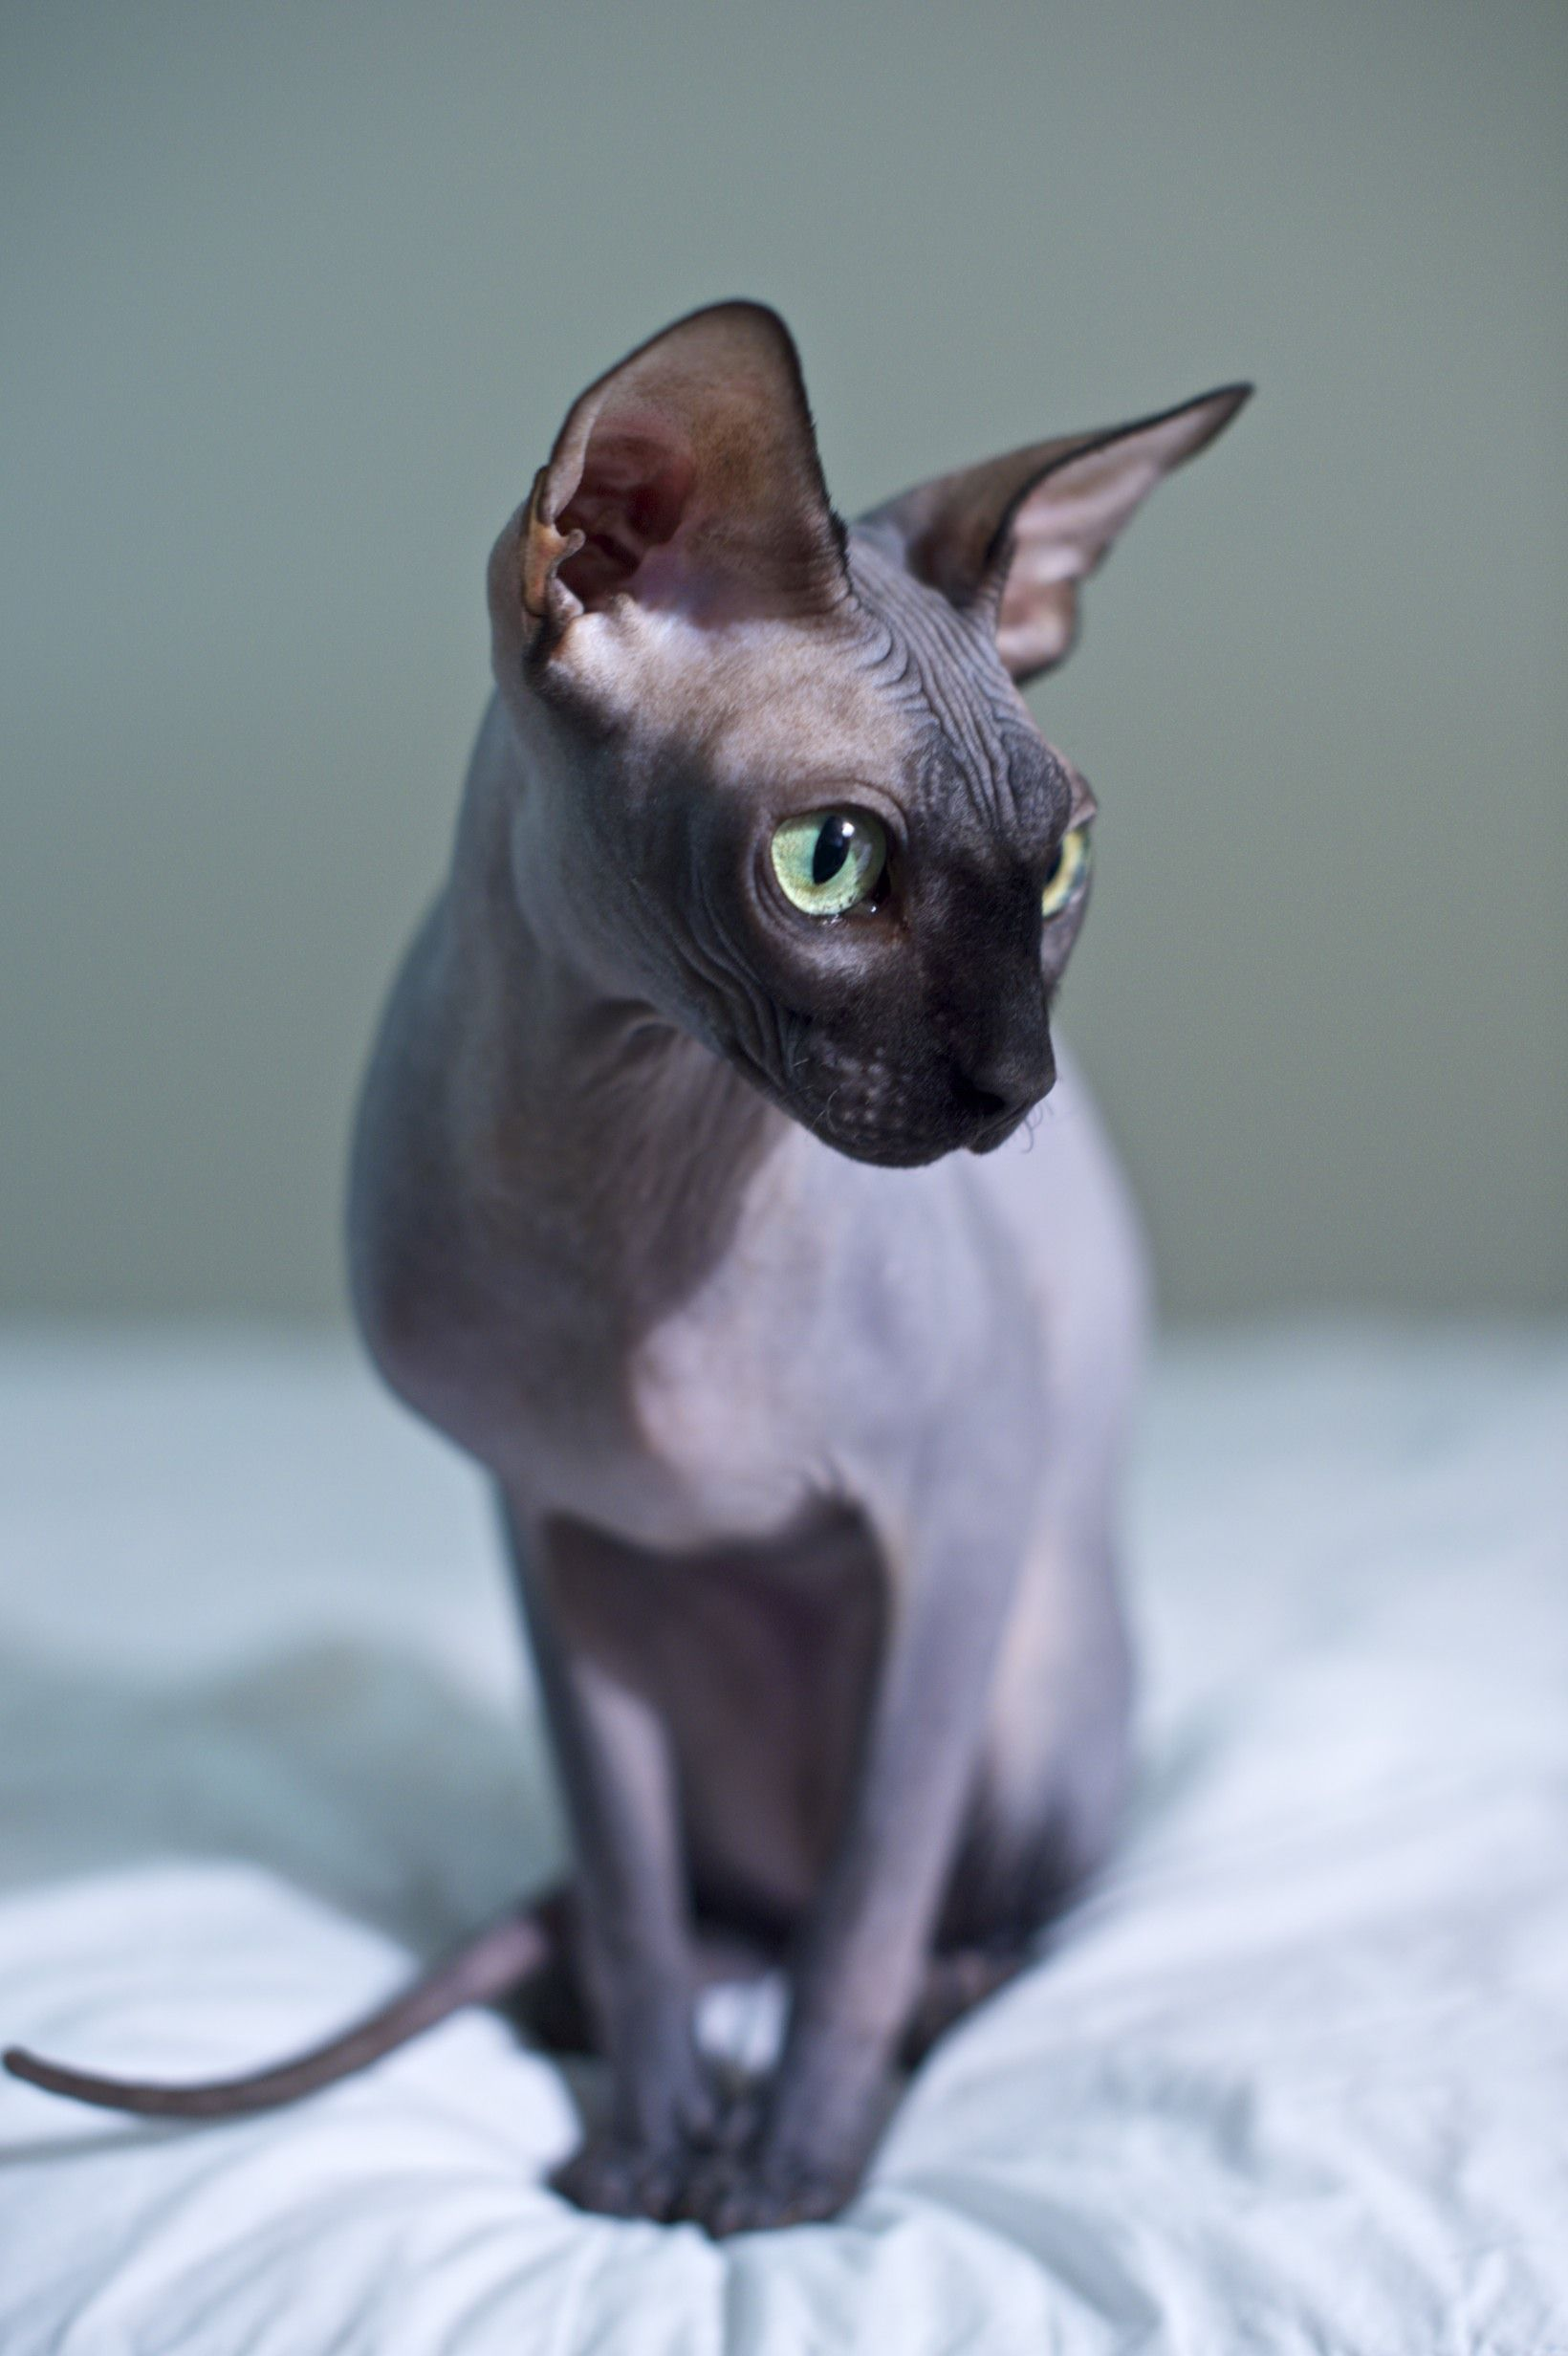 hairless sphynx cat looks very much like our beloved